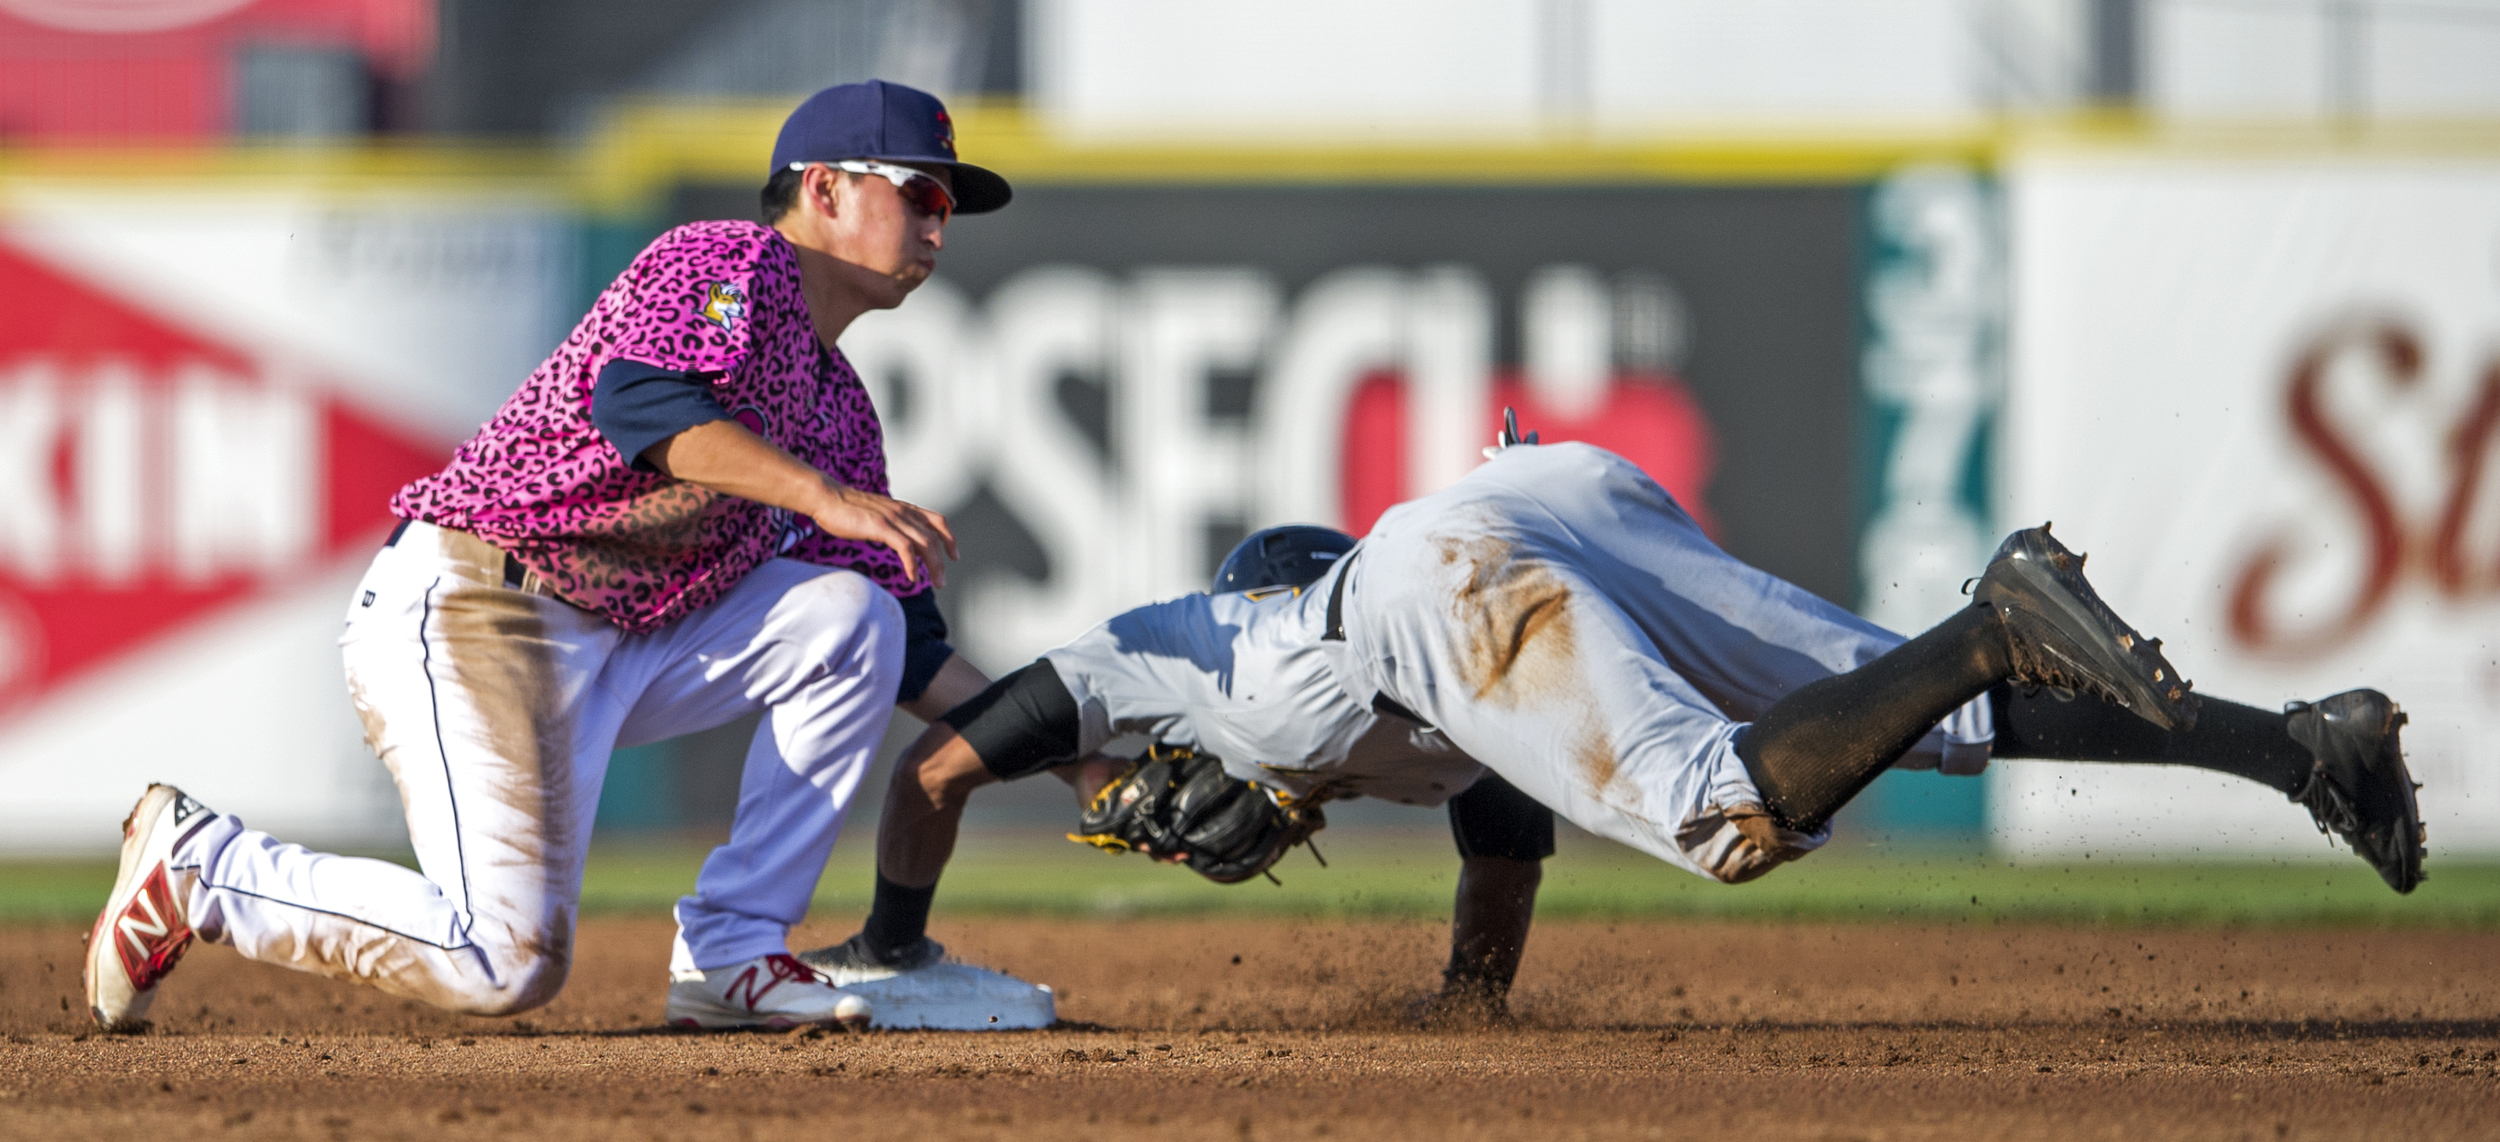 State College Spikes short stop Tommy Edman tags out West Virginia Black Bears center fielder Sandy Santos as he attempts to steal second base during the first game of their series at Medlar Field on Sunday, July 31, 2016.